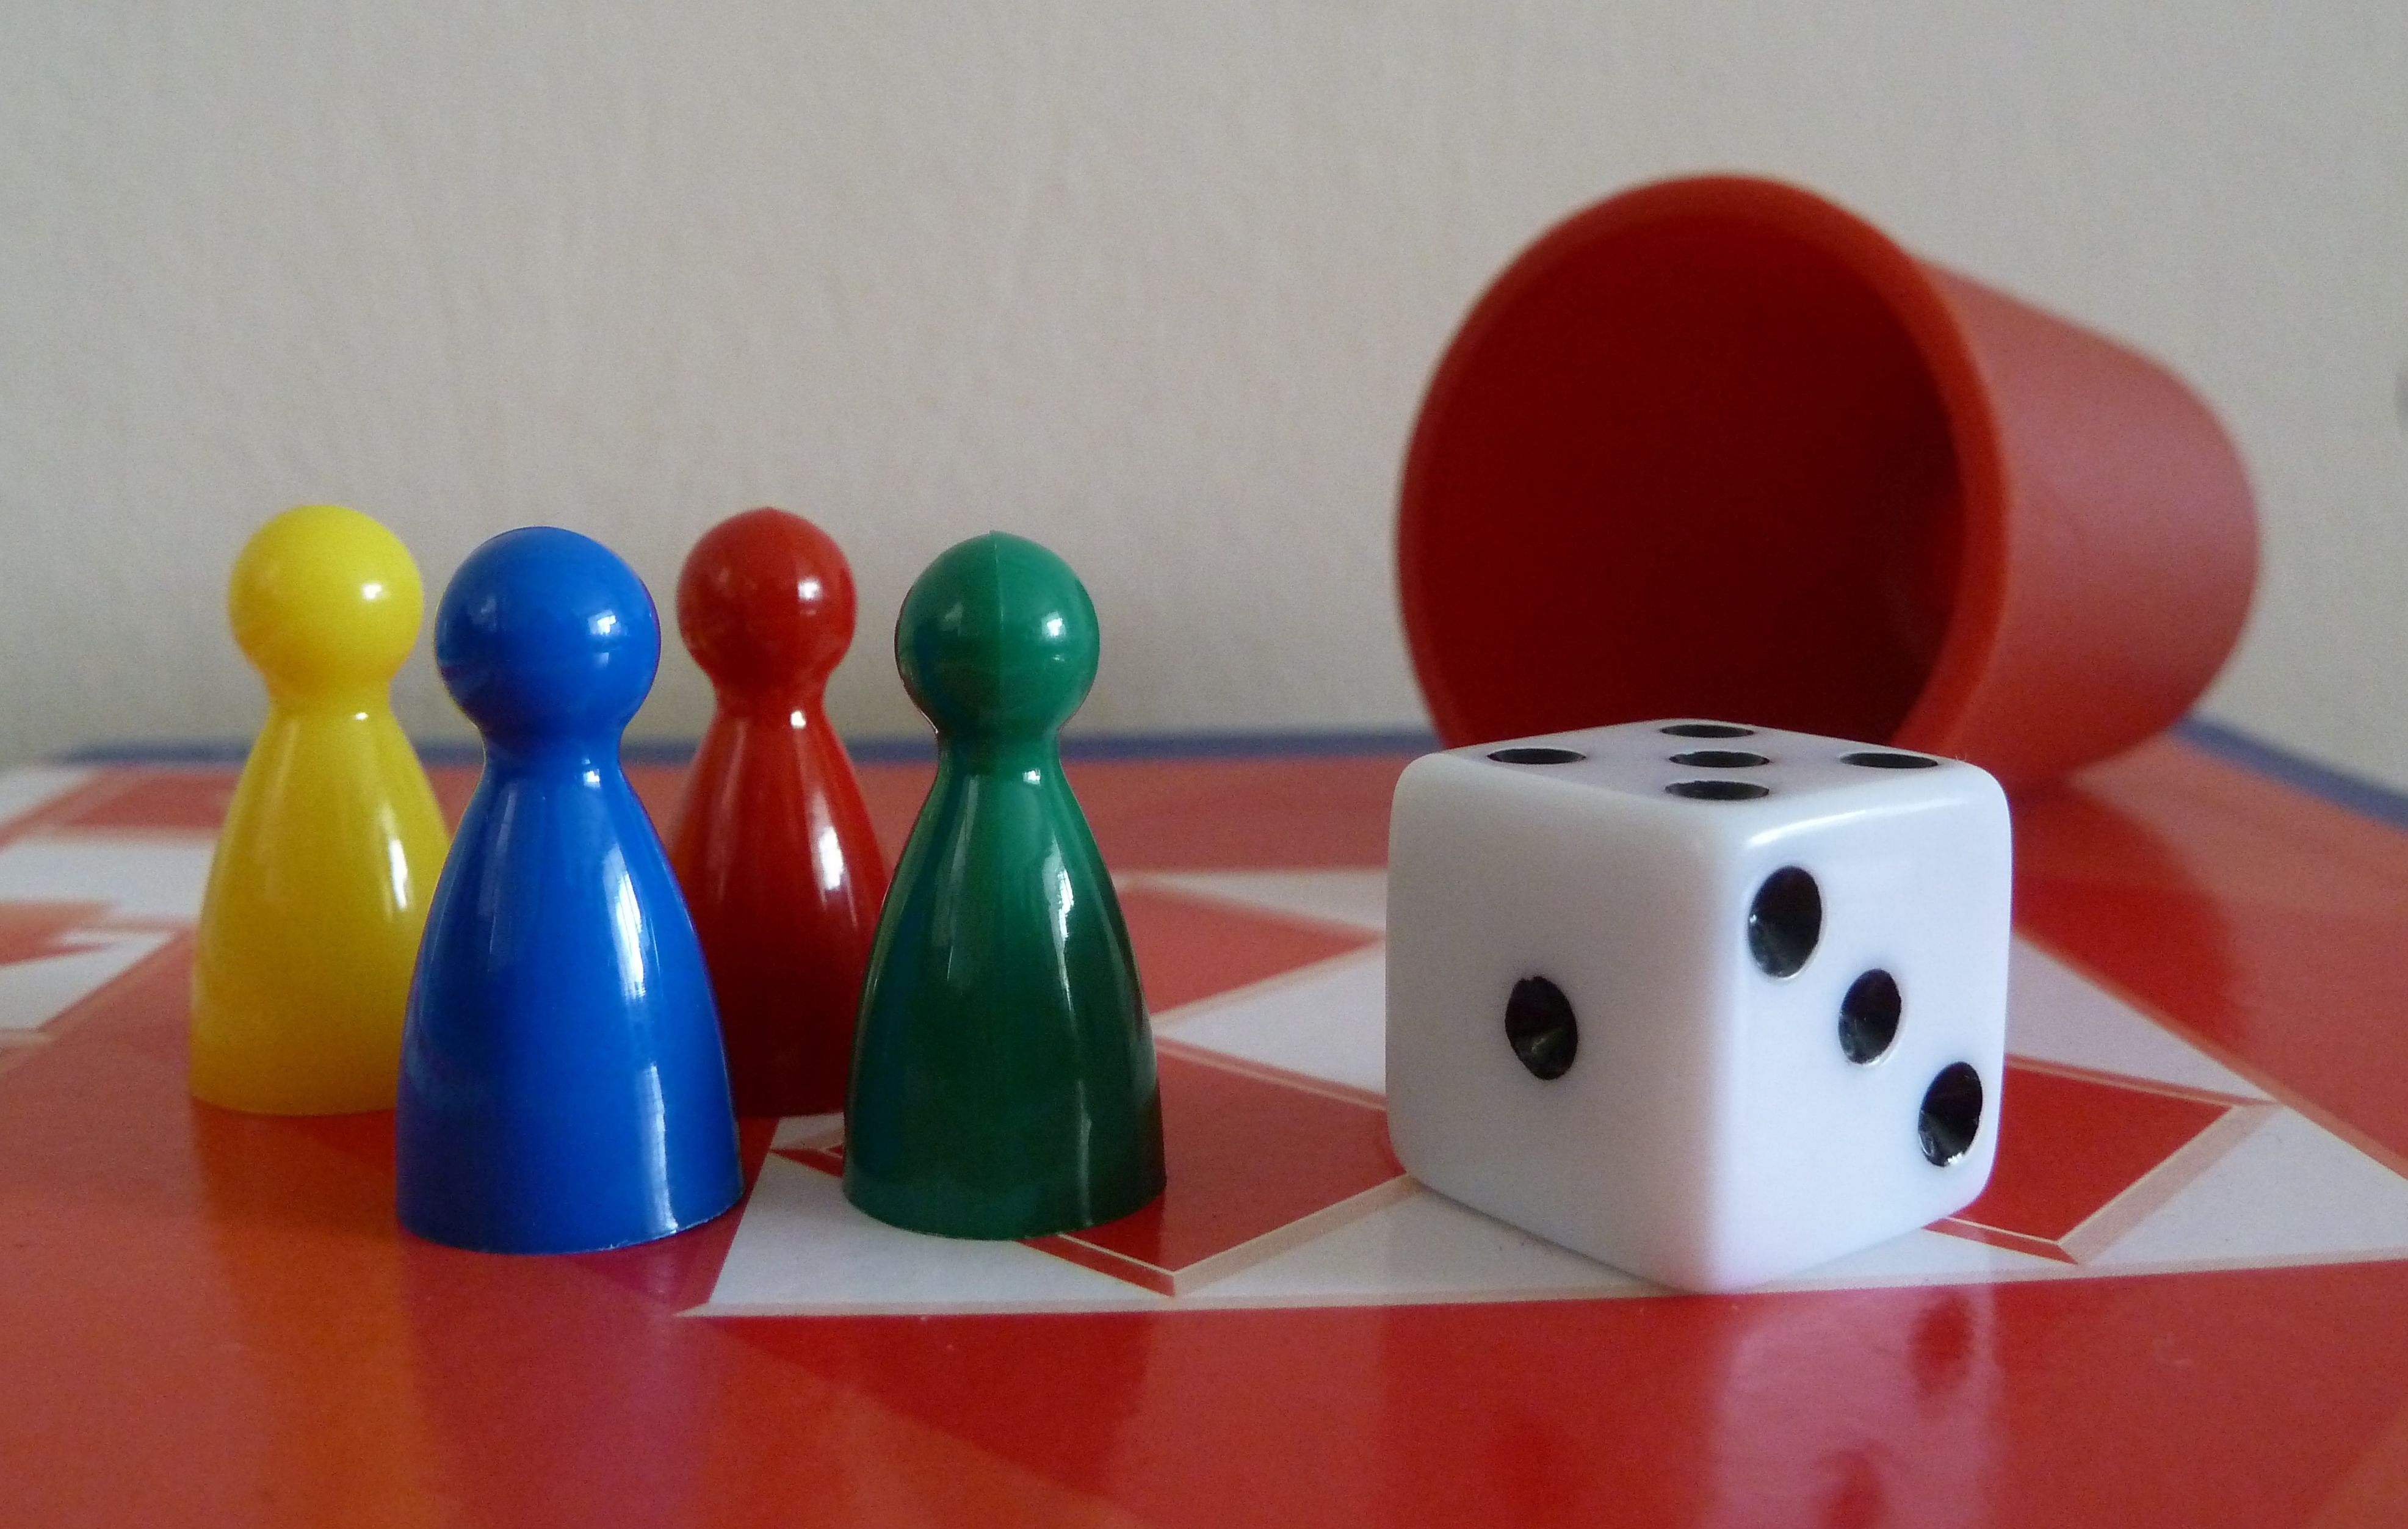 3945x2505 2 Wallpaper Site Quotes: clipart dice and game pieces Clipground